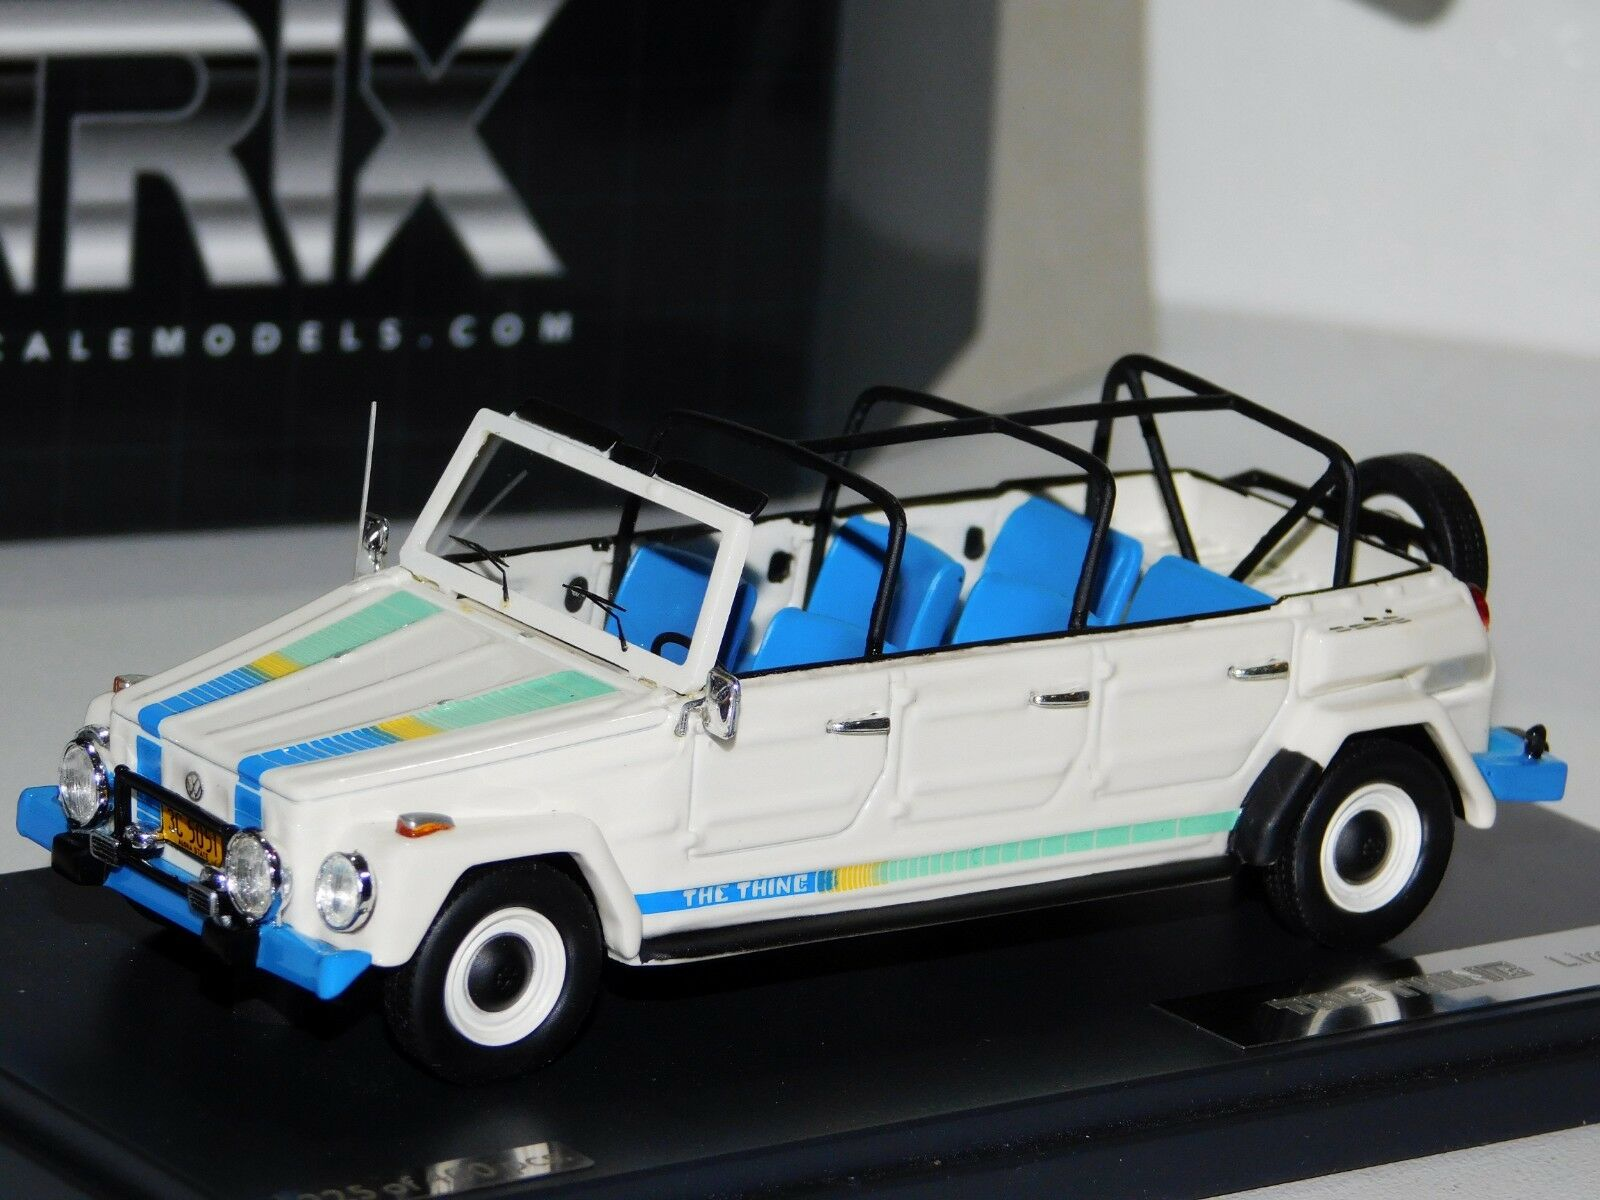 VOLKSWAGEN VW '' THE THING ''  LIMOUSINE MATRIX LIM. MX32105-051 1/43